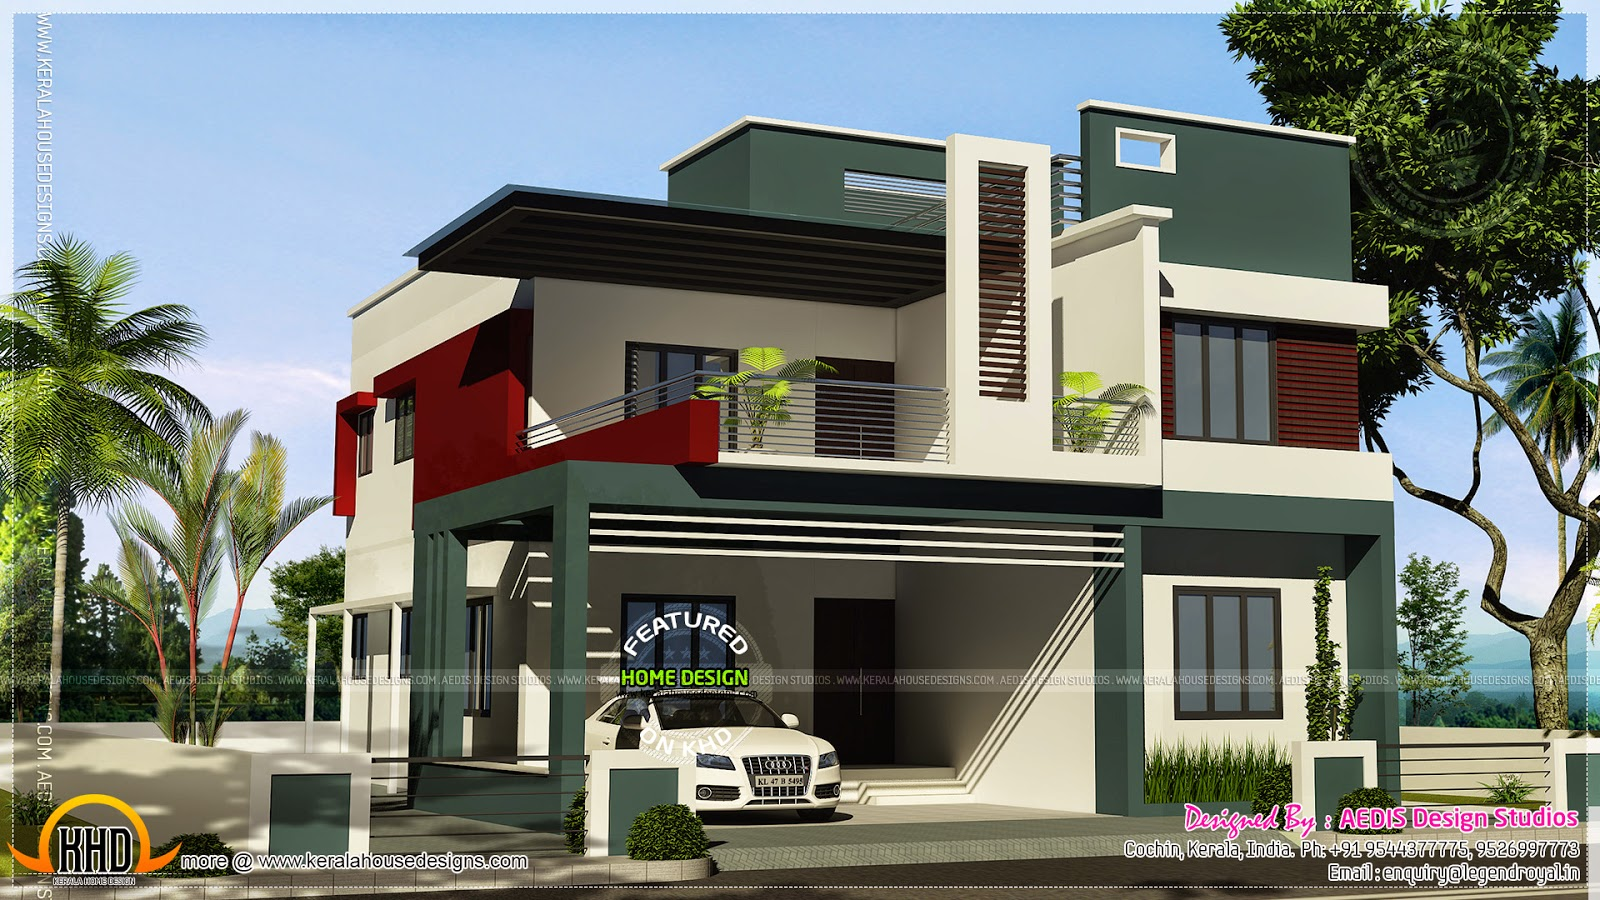 Duplex house plans south indian style home photo style Indian duplex house plans with photos